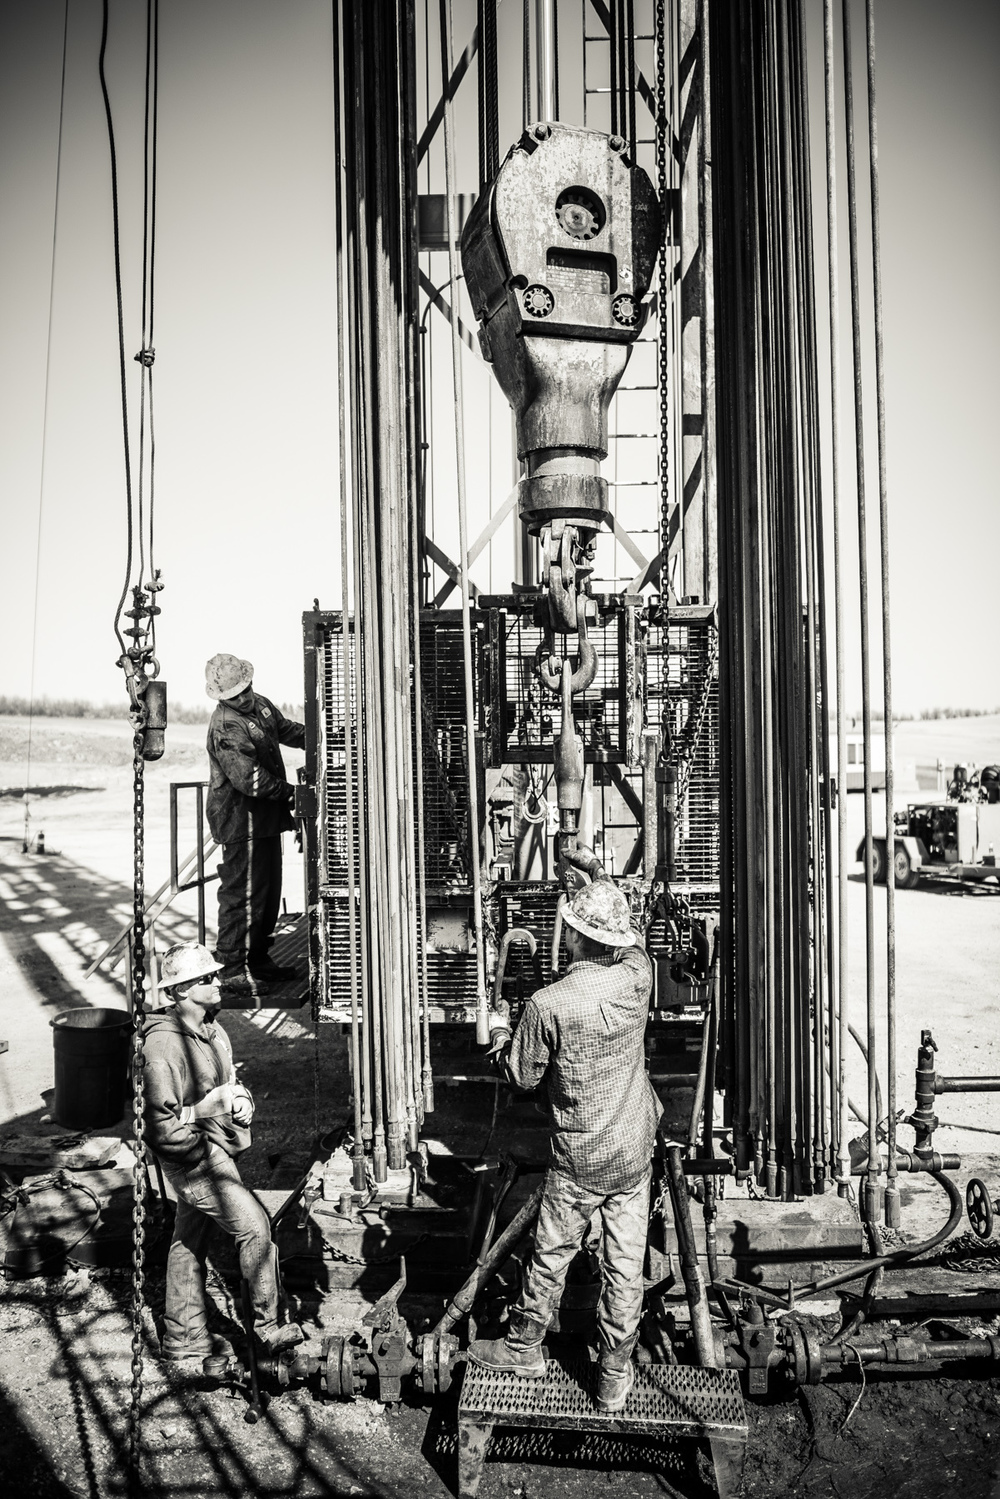 A workover crew removing four miles of pump rod to repair a well. The work is unending, incredibly physical and dangerous, as witnessed by the cast on the broken arm of the attending supervisor.